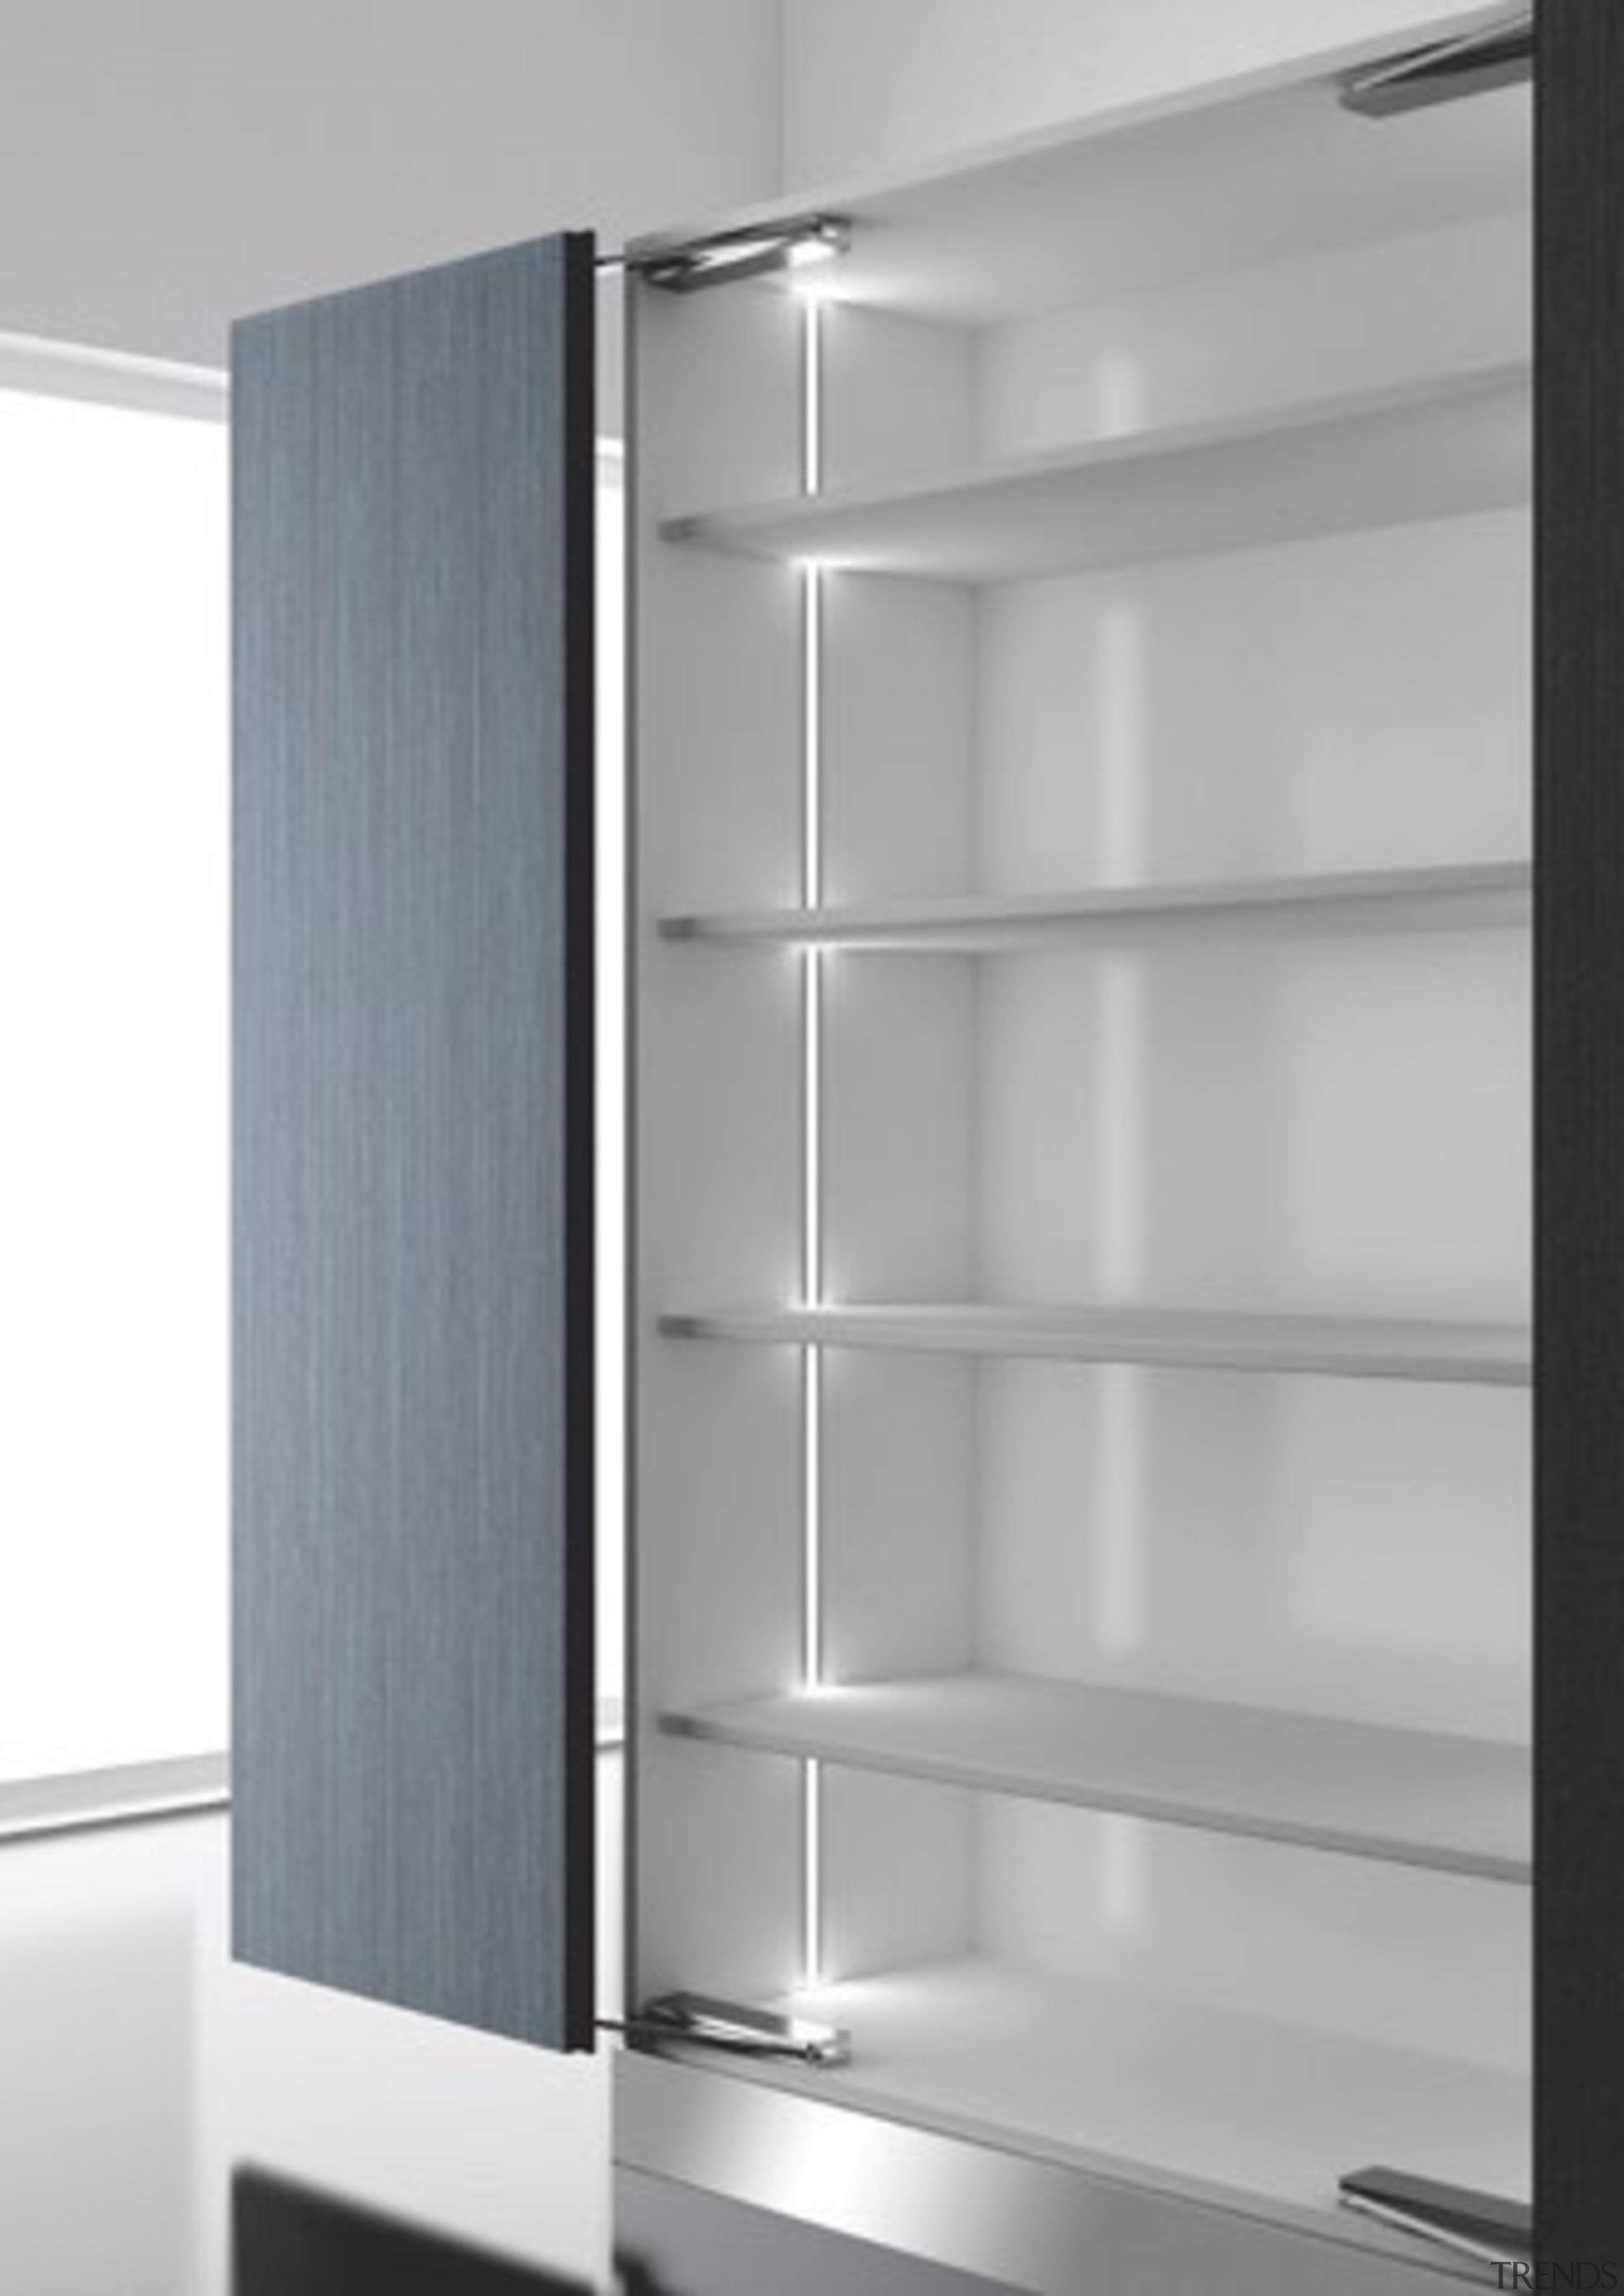 Domus Line Diva LED Profile Designed in Italy to angle, bathroom accessory, furniture, product design, shelf, shelving, gray